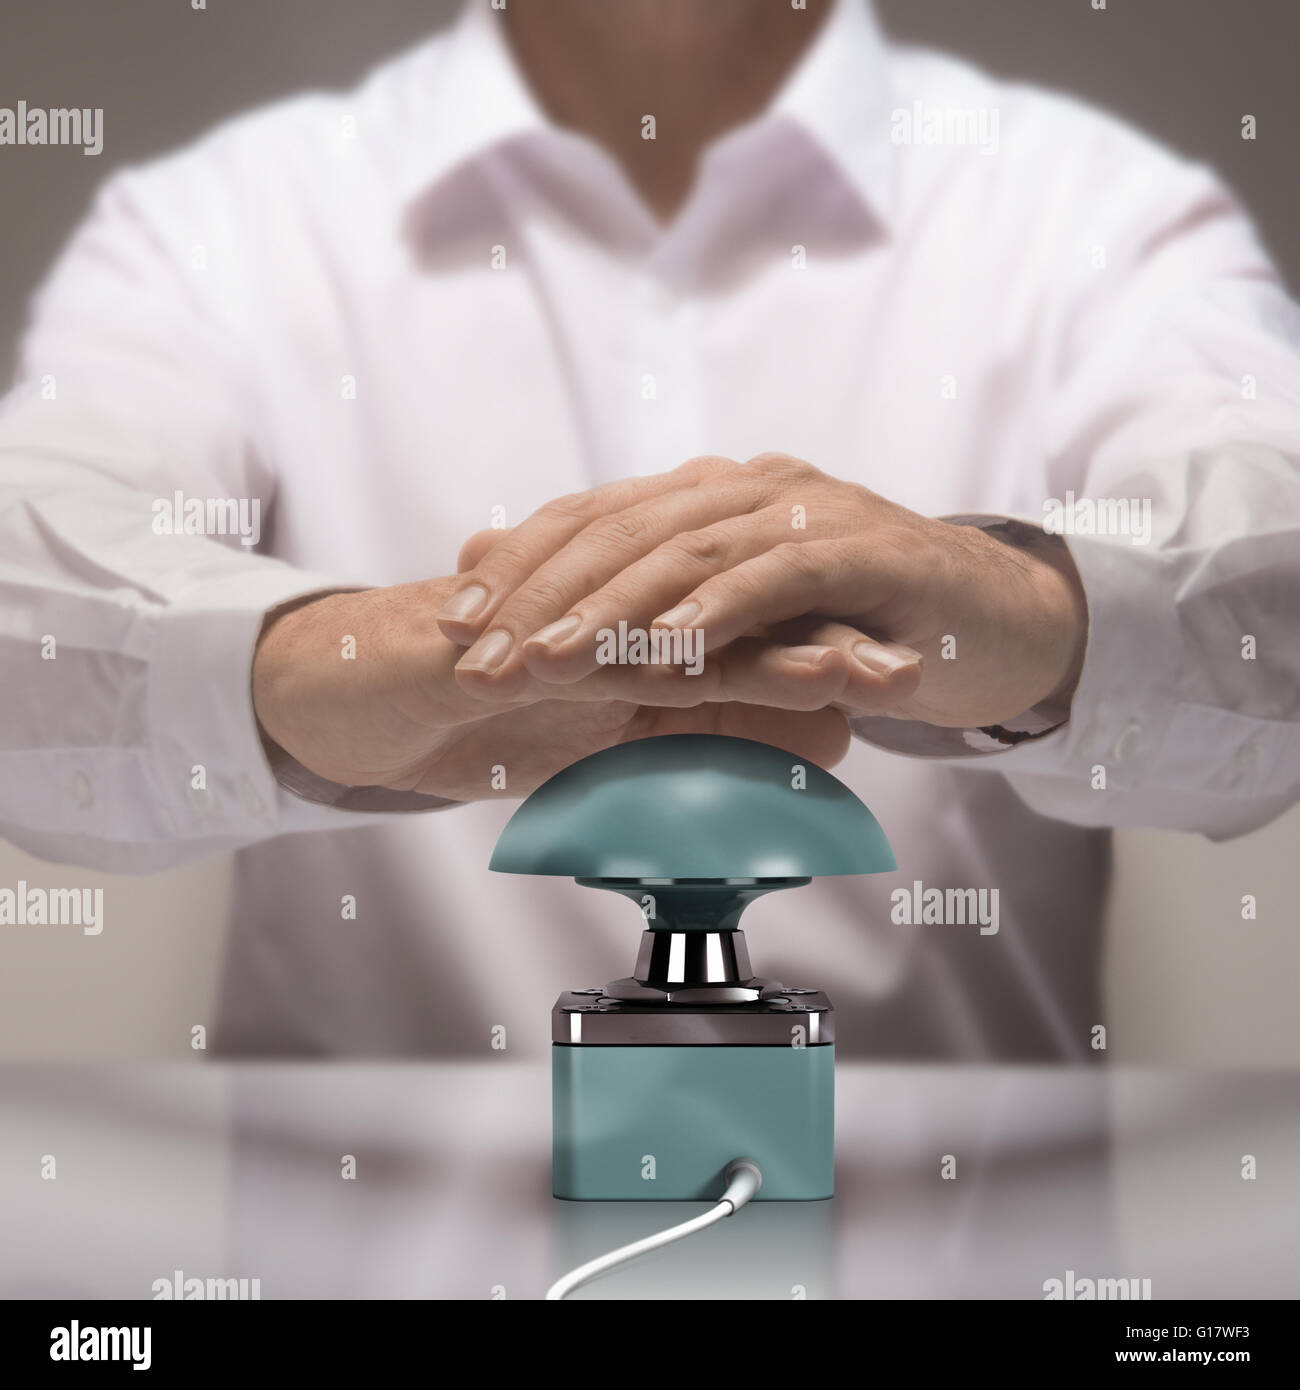 Image compositing between photography and 3D busser. Man with two hands about to press the button for answering - Stock Image